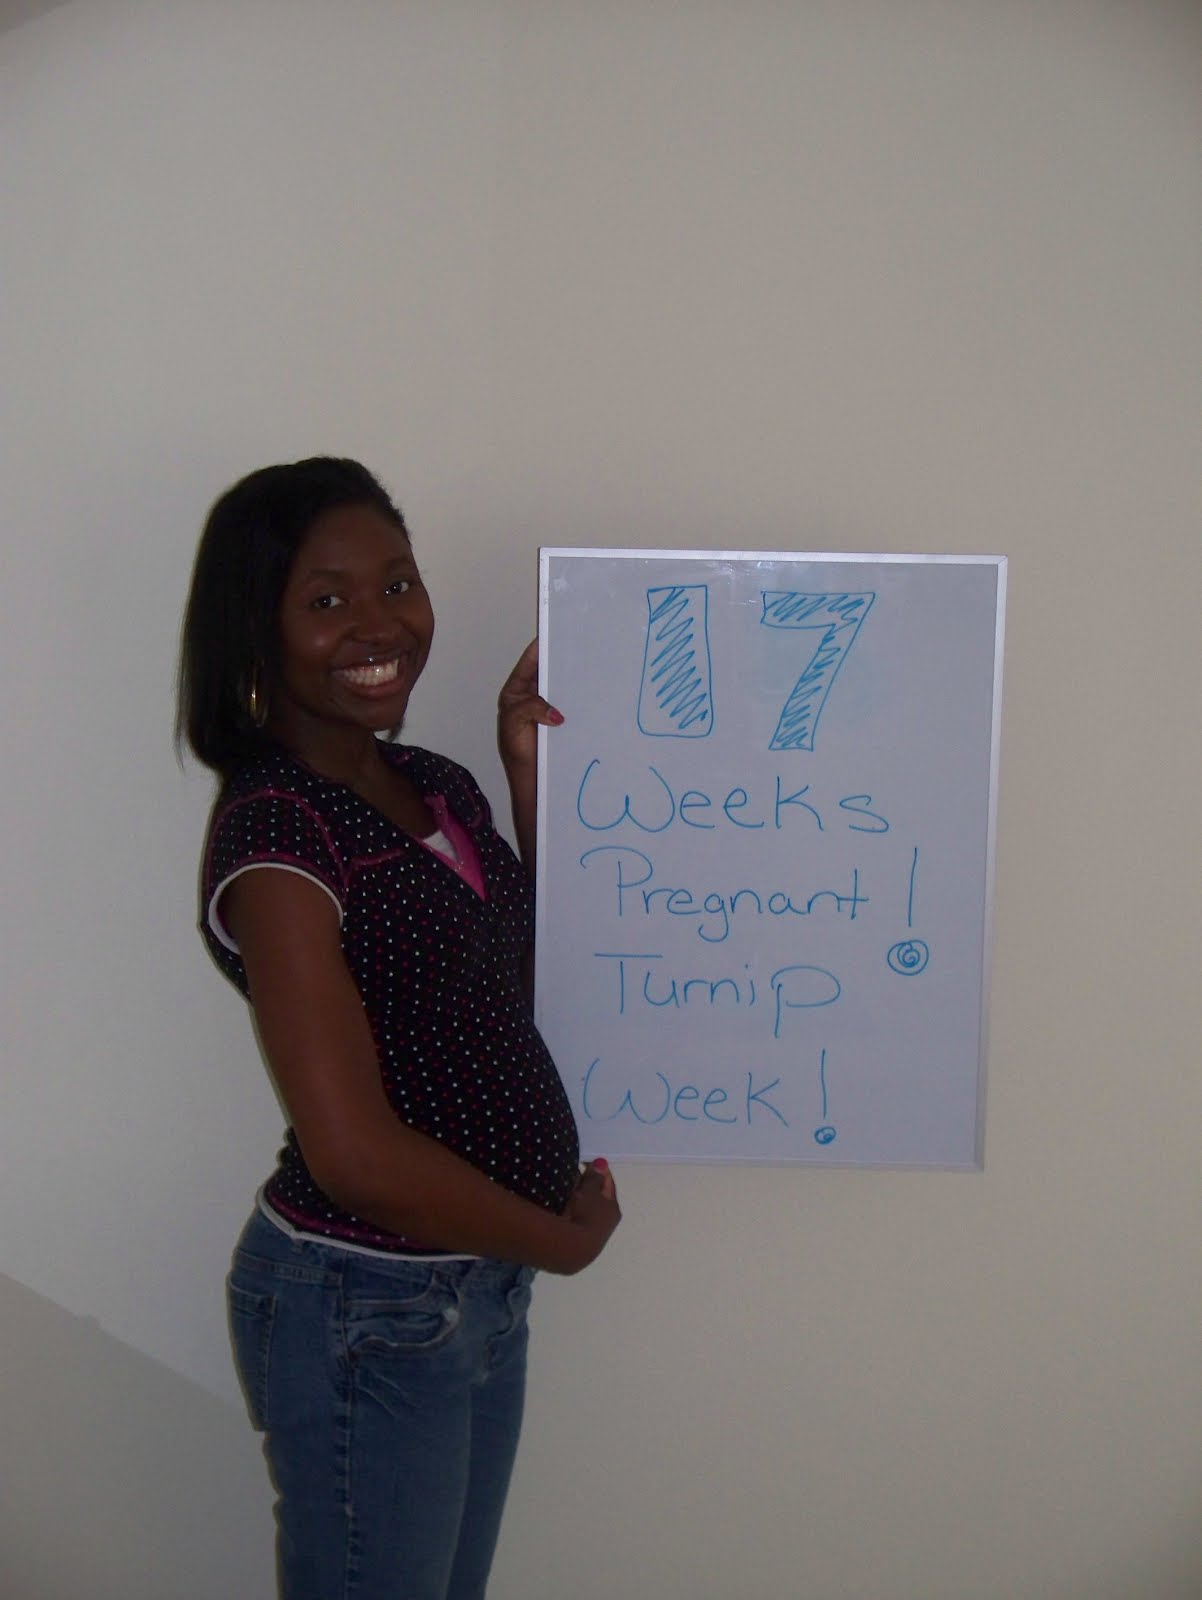 First King Baby on the Way!: 17 Weeks Pregnant! (Turnip Week)